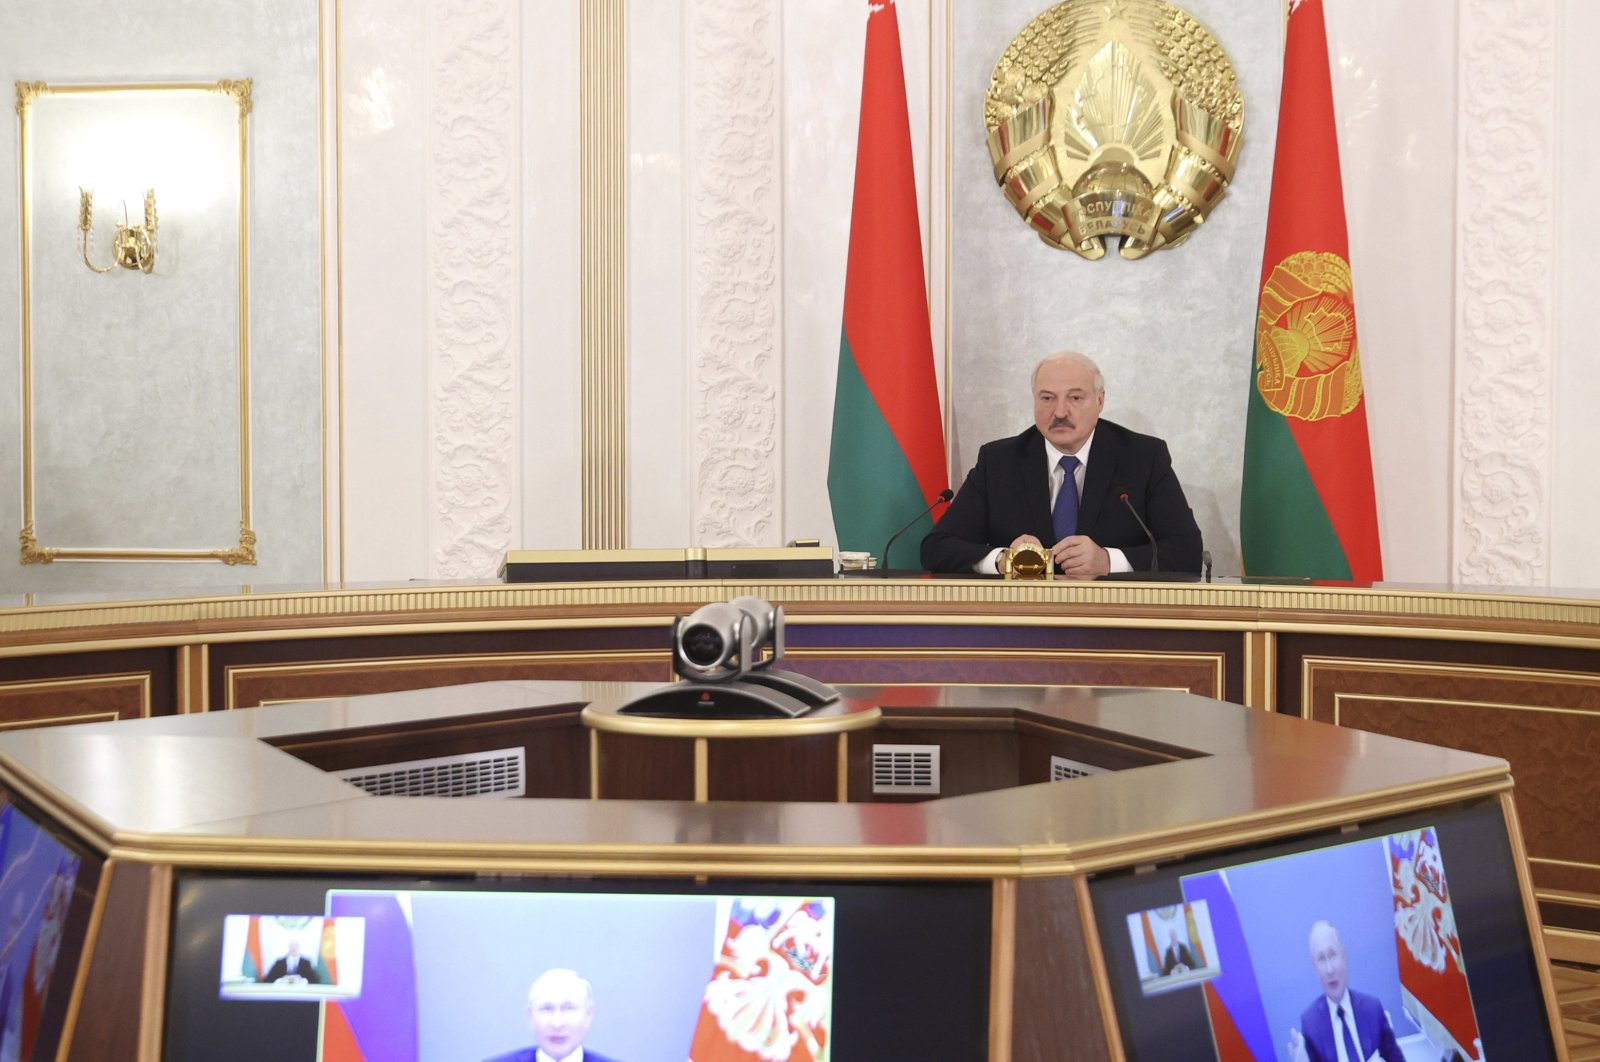 Belarusian President Alexander Lukashenko takes part in a video call with Russian President Vladimir Putin, on the screens, and Russian and Belarusian officials in Minsk, Belarus, Thursday, July 1, 2021. (AP Photo)